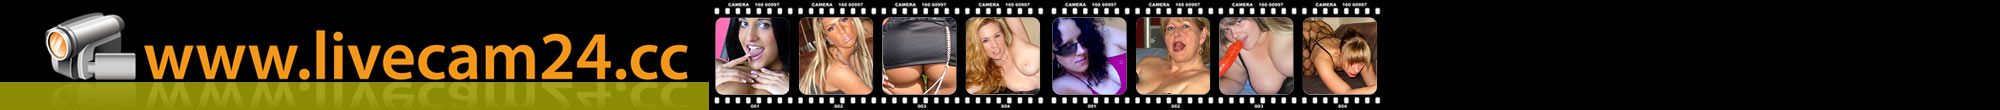 SexyJacky, 30 Jahre, BH: 80 DD - brüste 75dd -  - Video Web Cams Live Sex Chat von heissen Girls